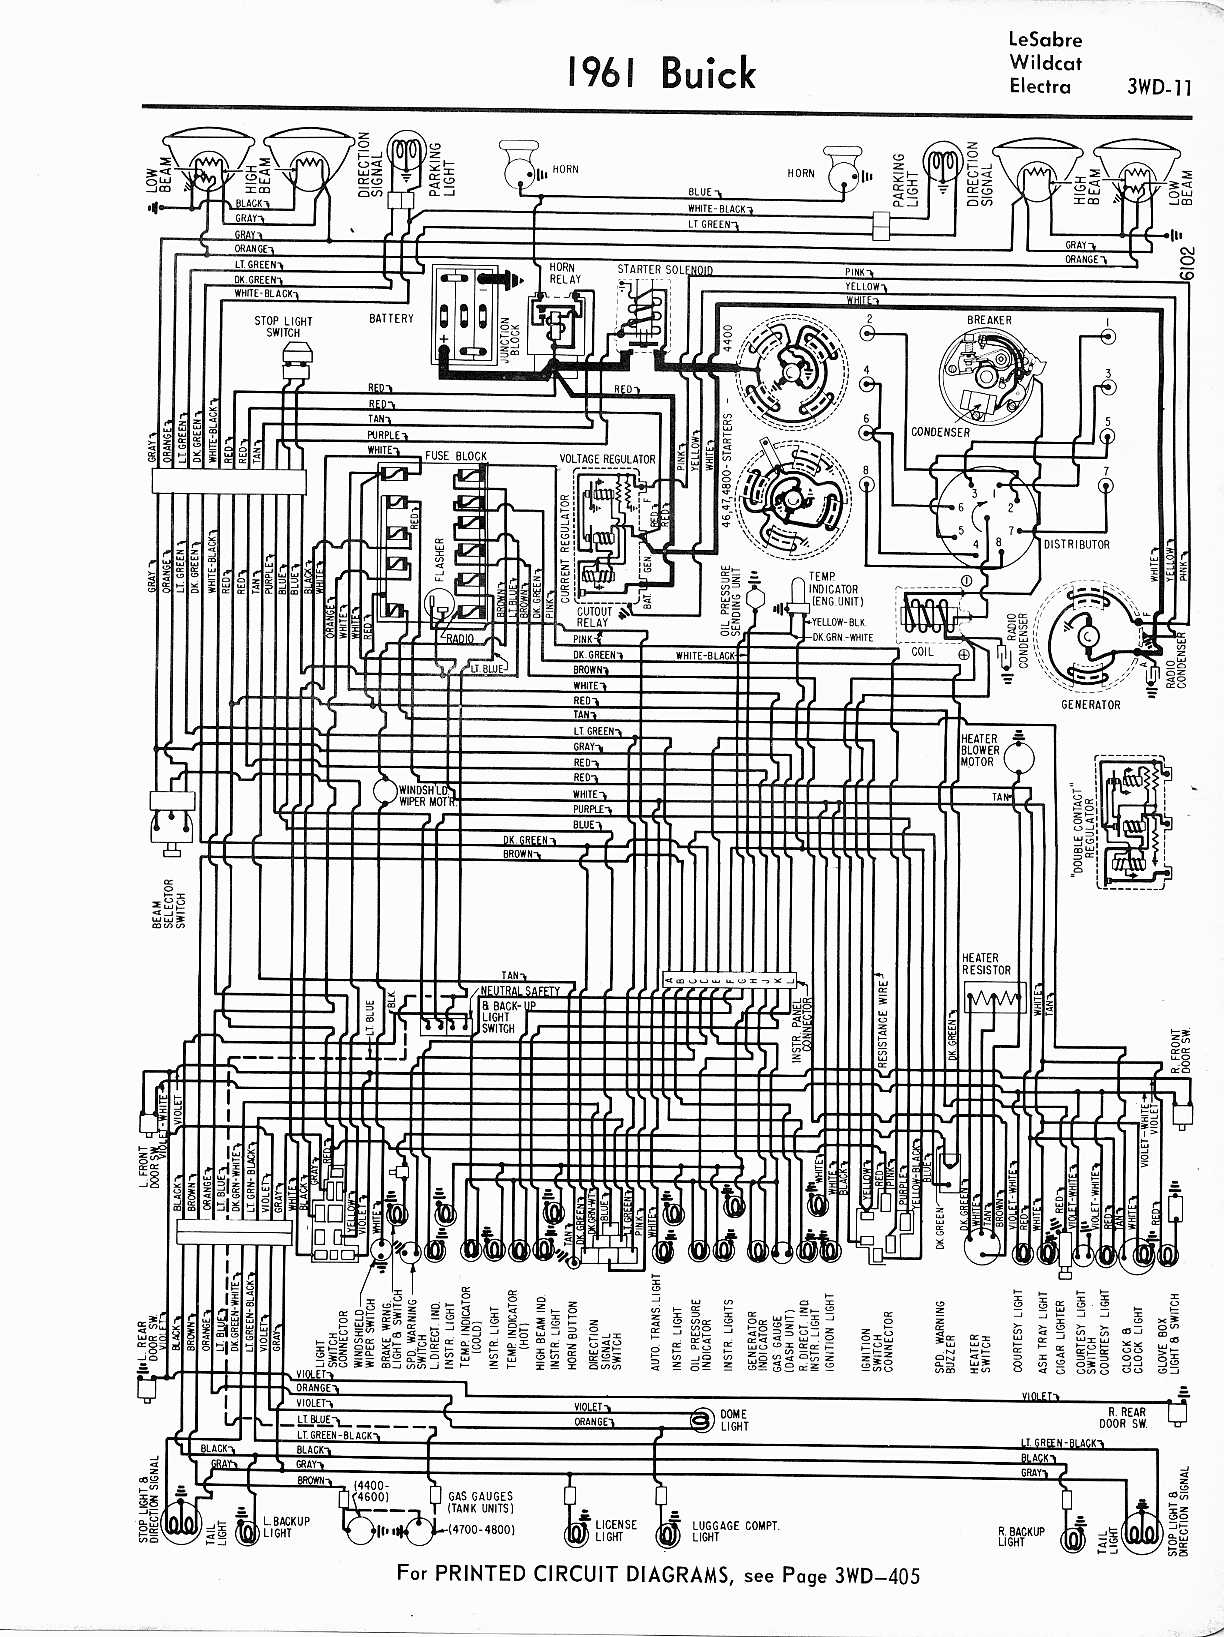 MWireBuic65_3WD 011 buick wiring diagrams 1957 1965 1999 buick century wiring diagram at mifinder.co